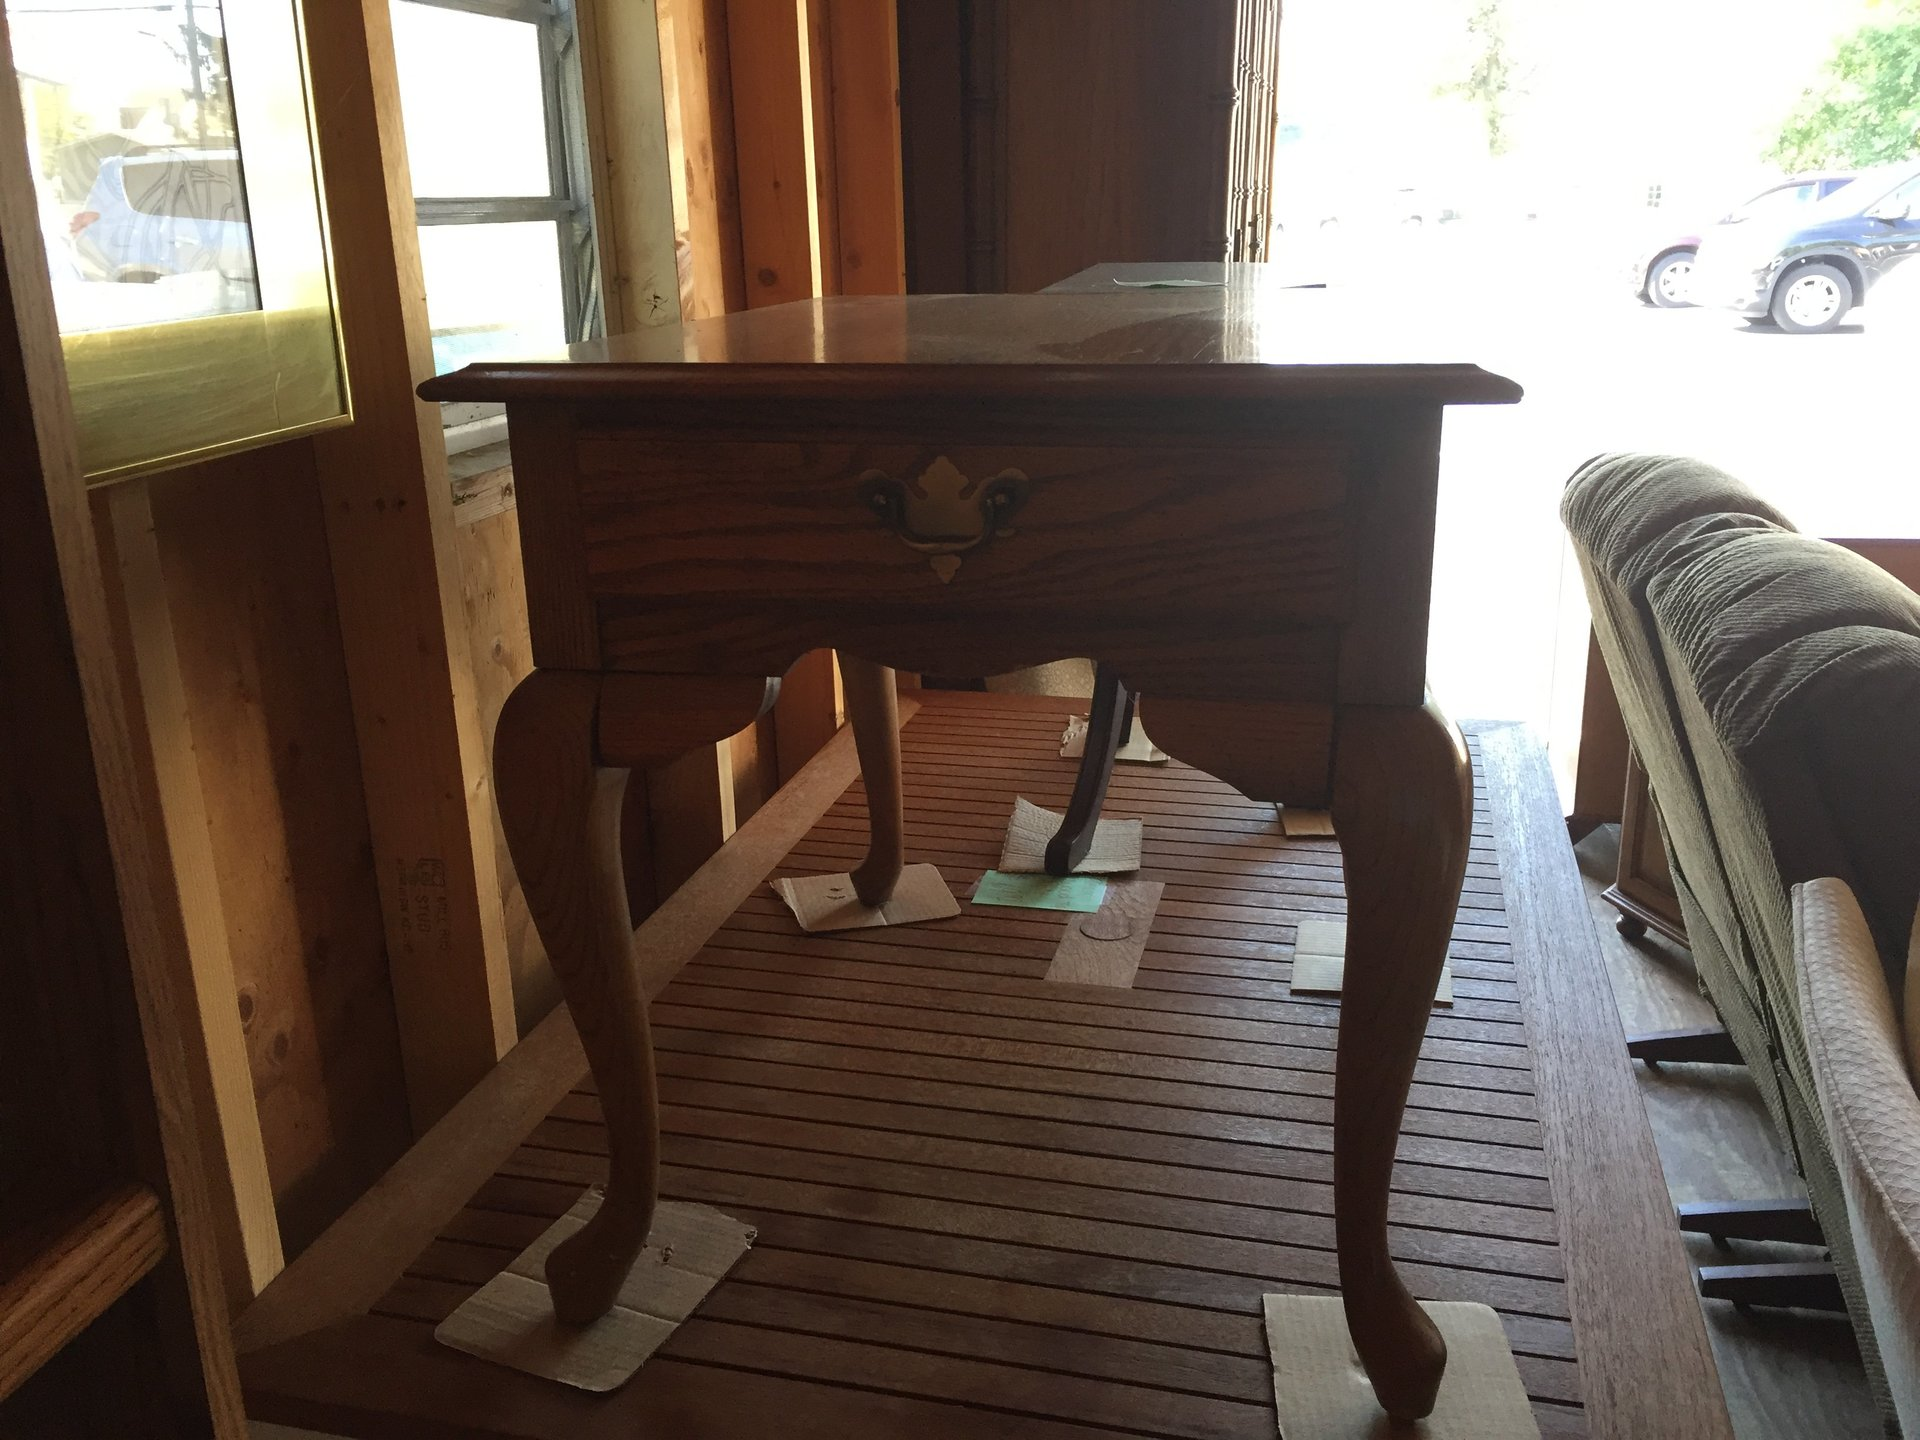 queen anne accent table pilates img broyhill end with drawer oak leg moyers furniture baskets for under coffee modern ideas sears baby clothes white ceramic tables drawers and led